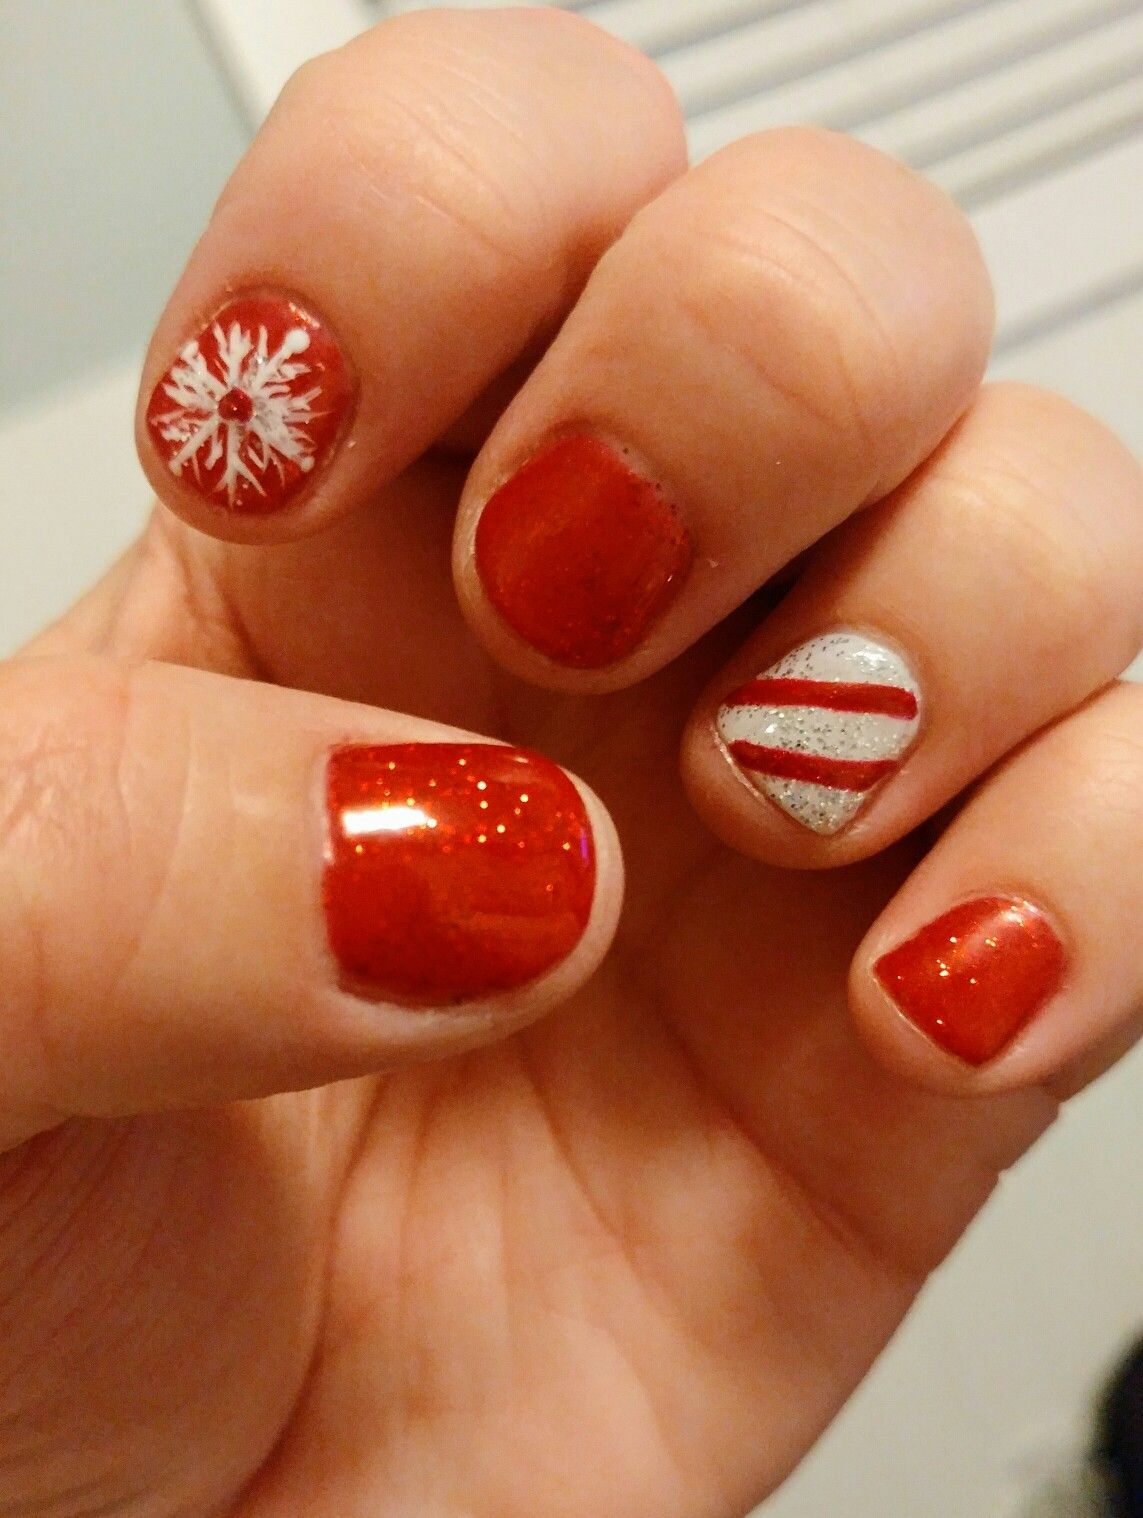 Wanted fun holiday nails #red #white #snowflakes #candycane #nailart #shellacnails